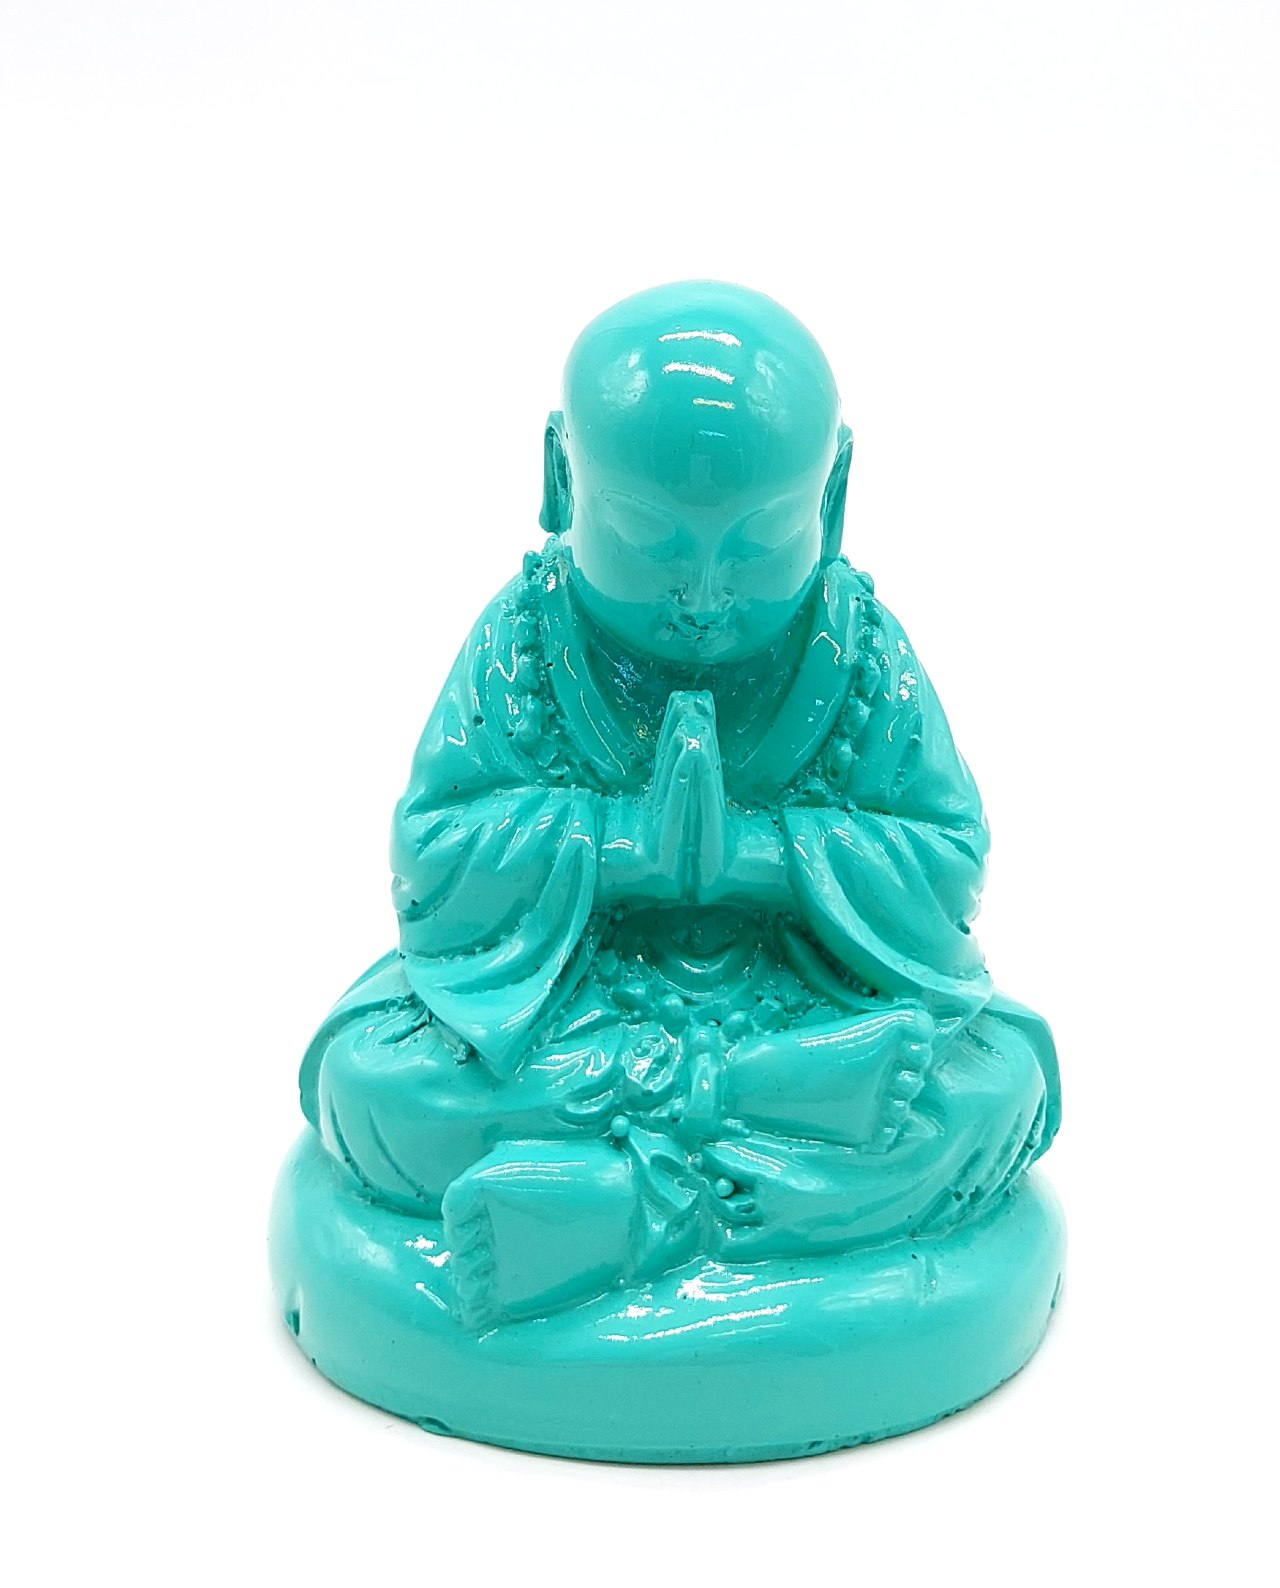 Monk Resin Height 10 cm turquoise